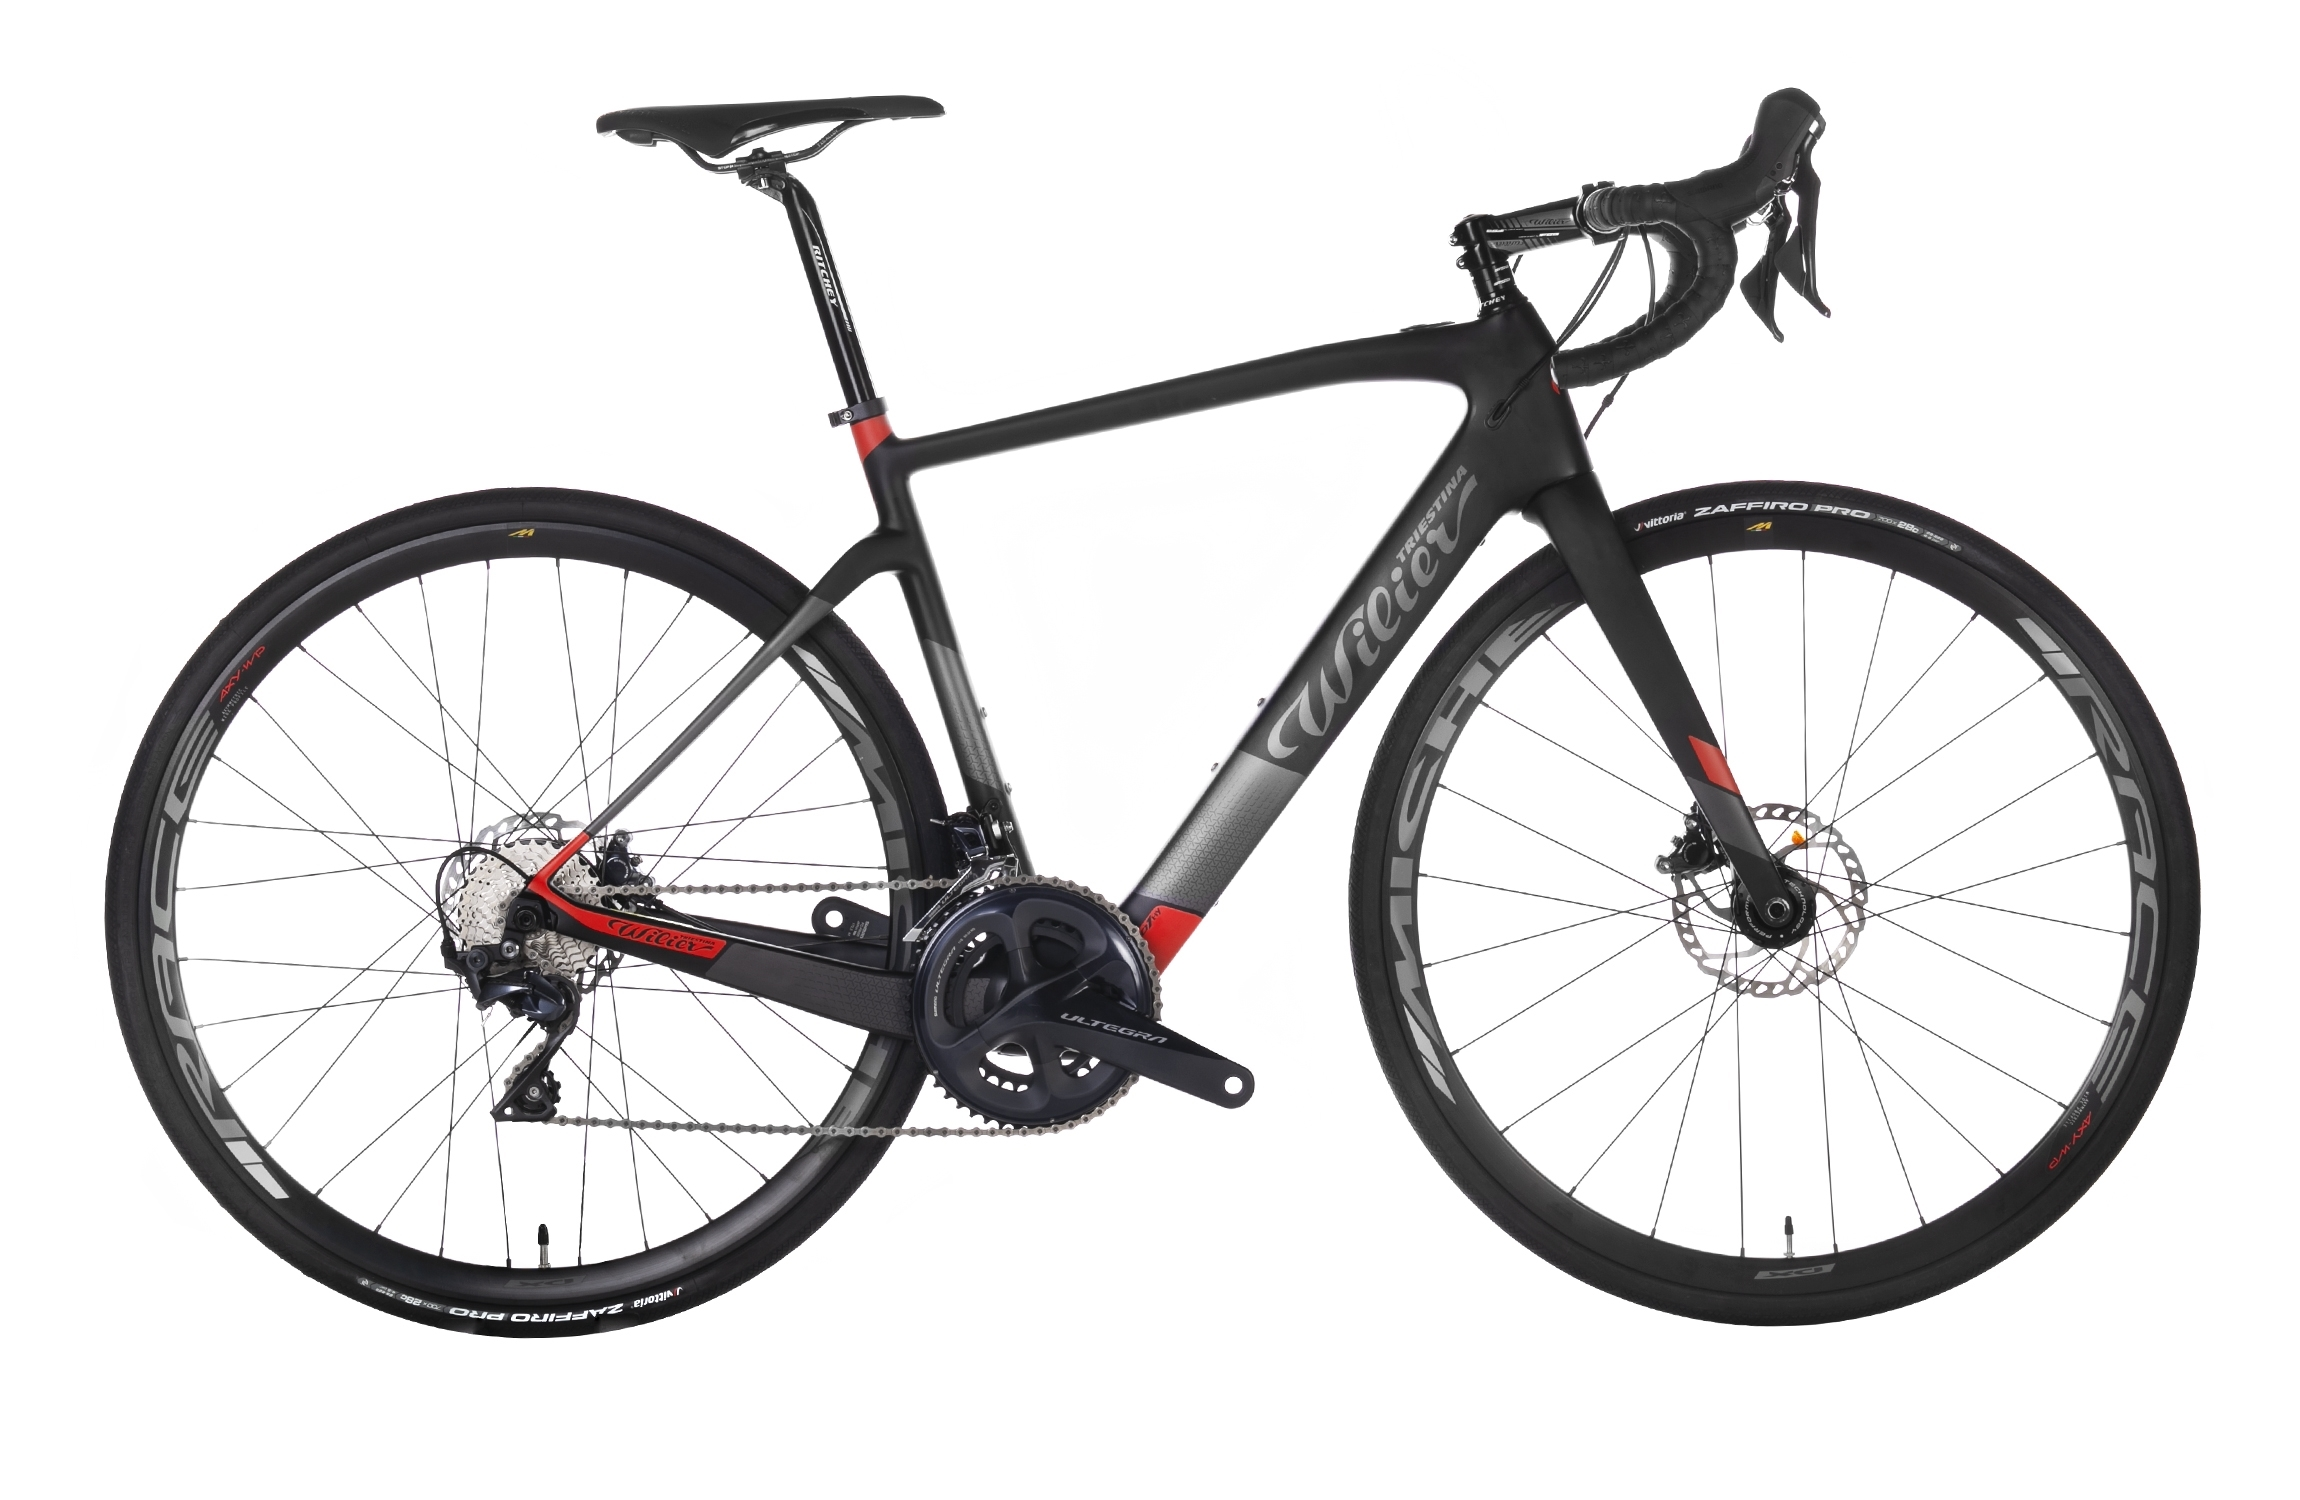 kolo CENTO1HY + ULTEGRA R8020 + MICHE black red M